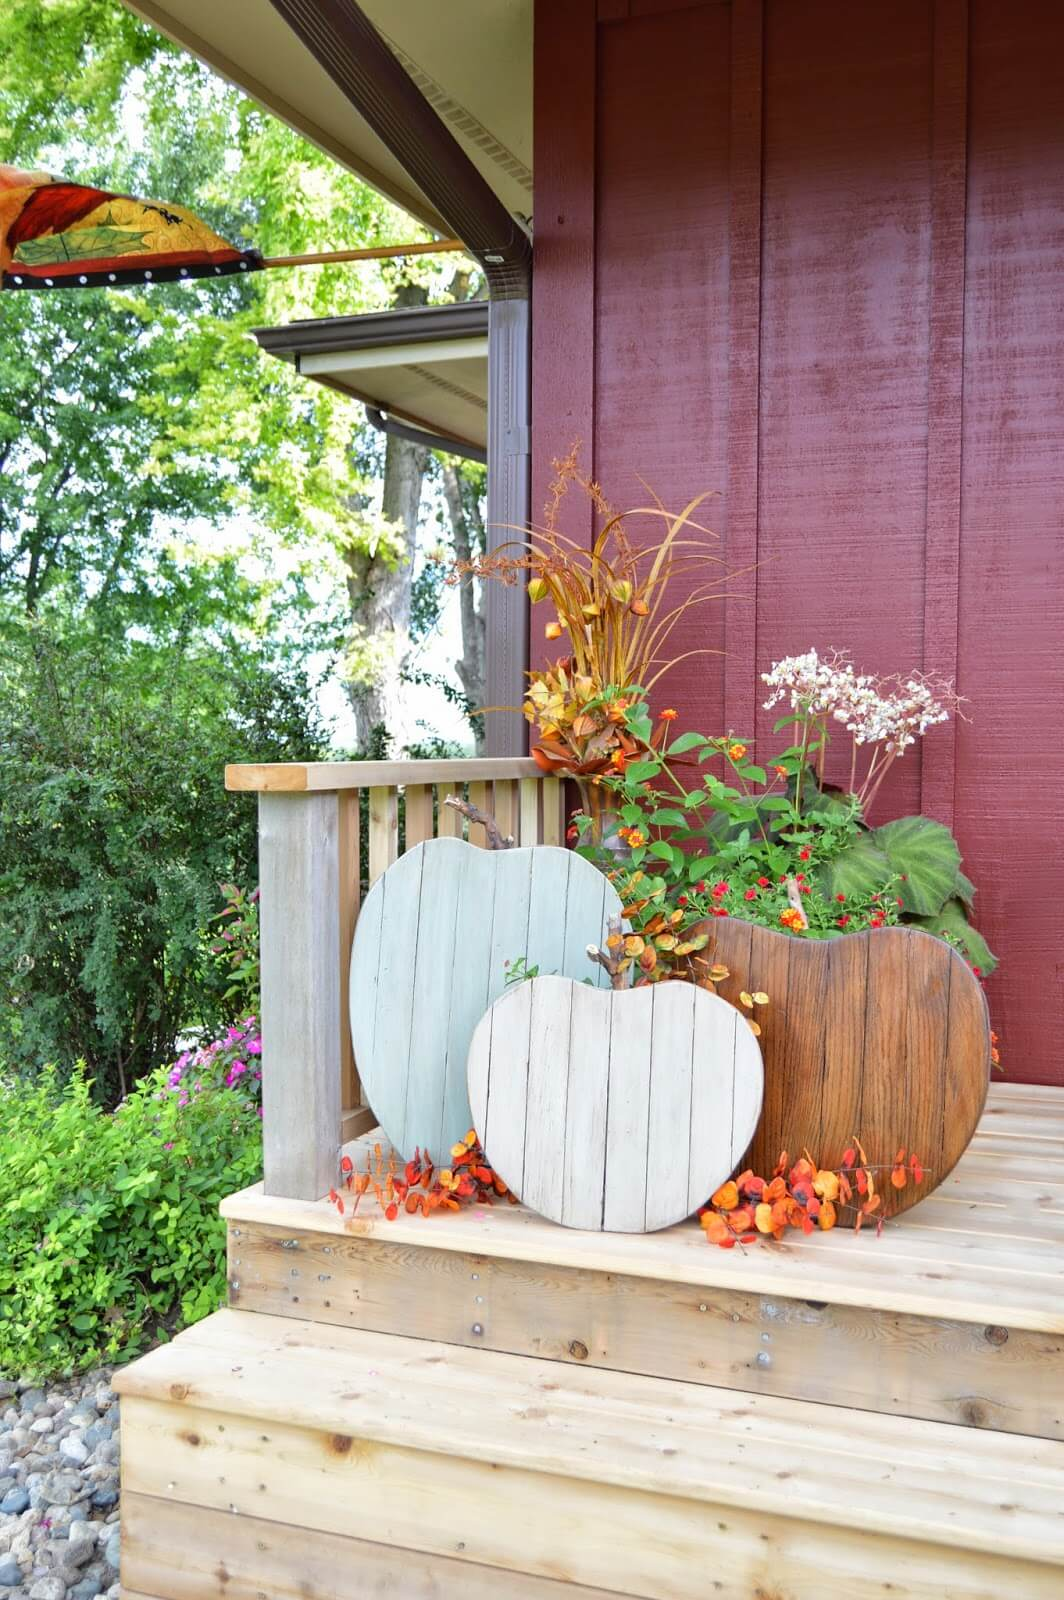 Wooden Pumpkin Shaped Planters Perfect for Fall